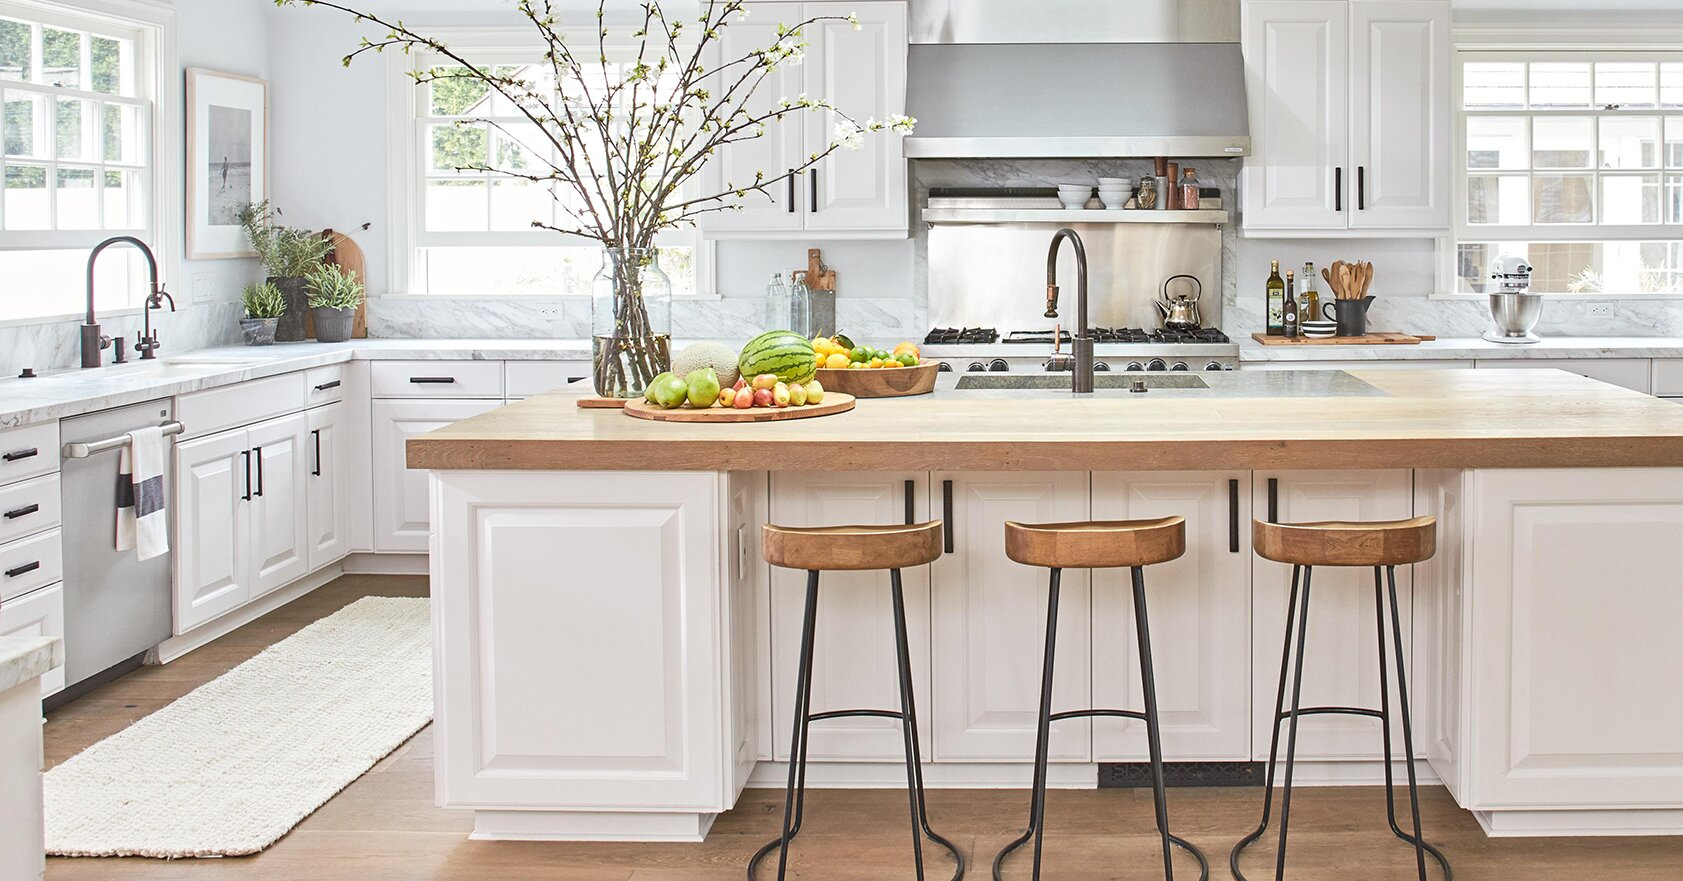 Clean Kitchen And Bathroom Countertops